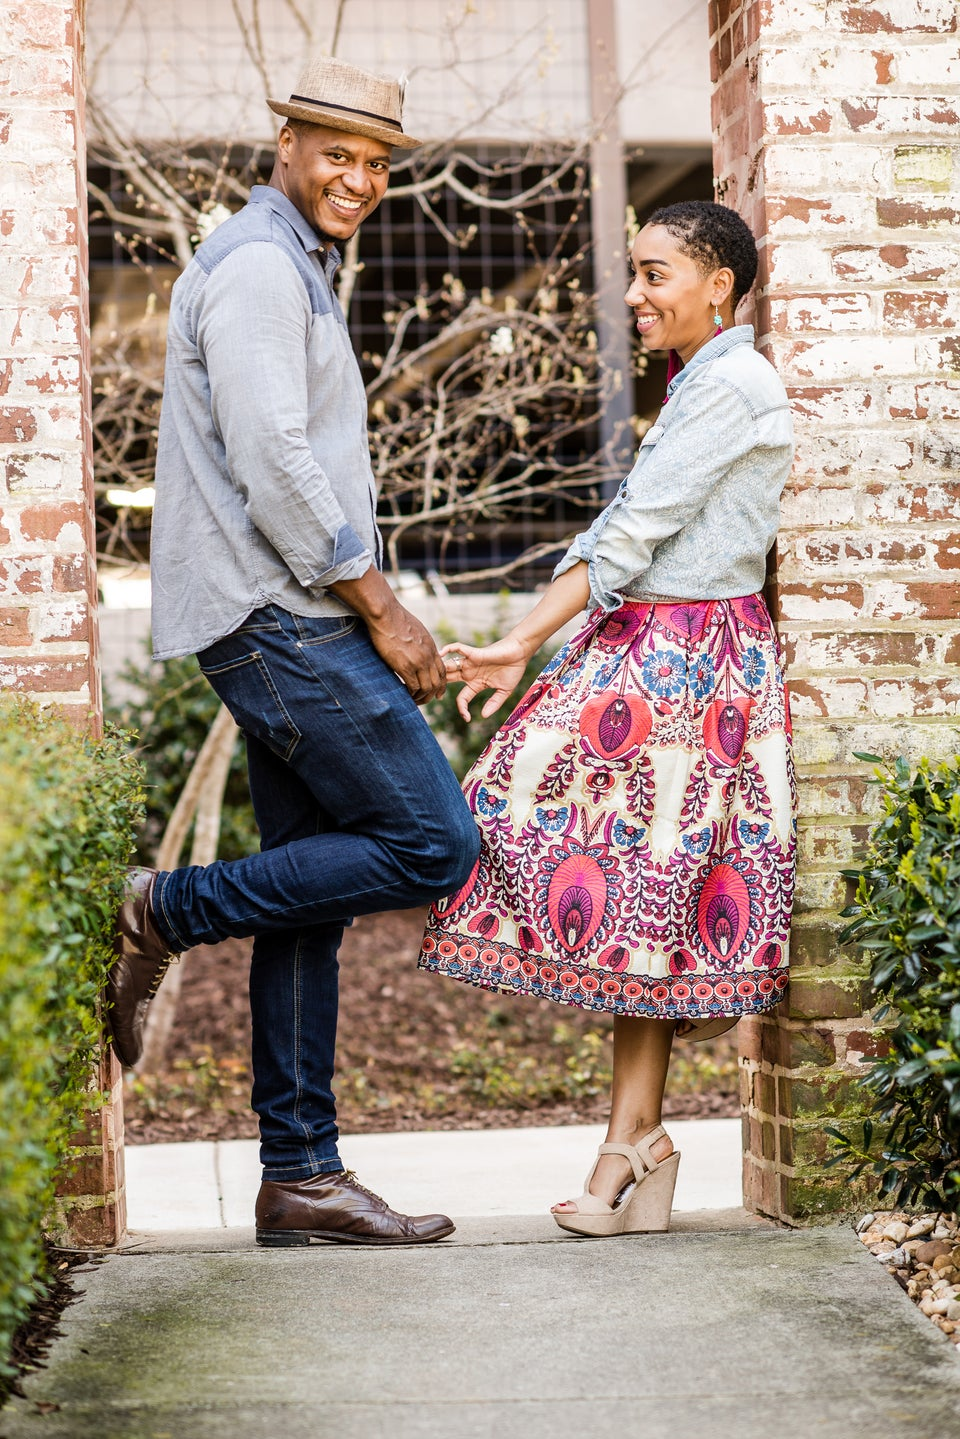 Couple Crush Of The Week: Faith And Friendship Helped These YouTube Vloggers Build A Lasting Love